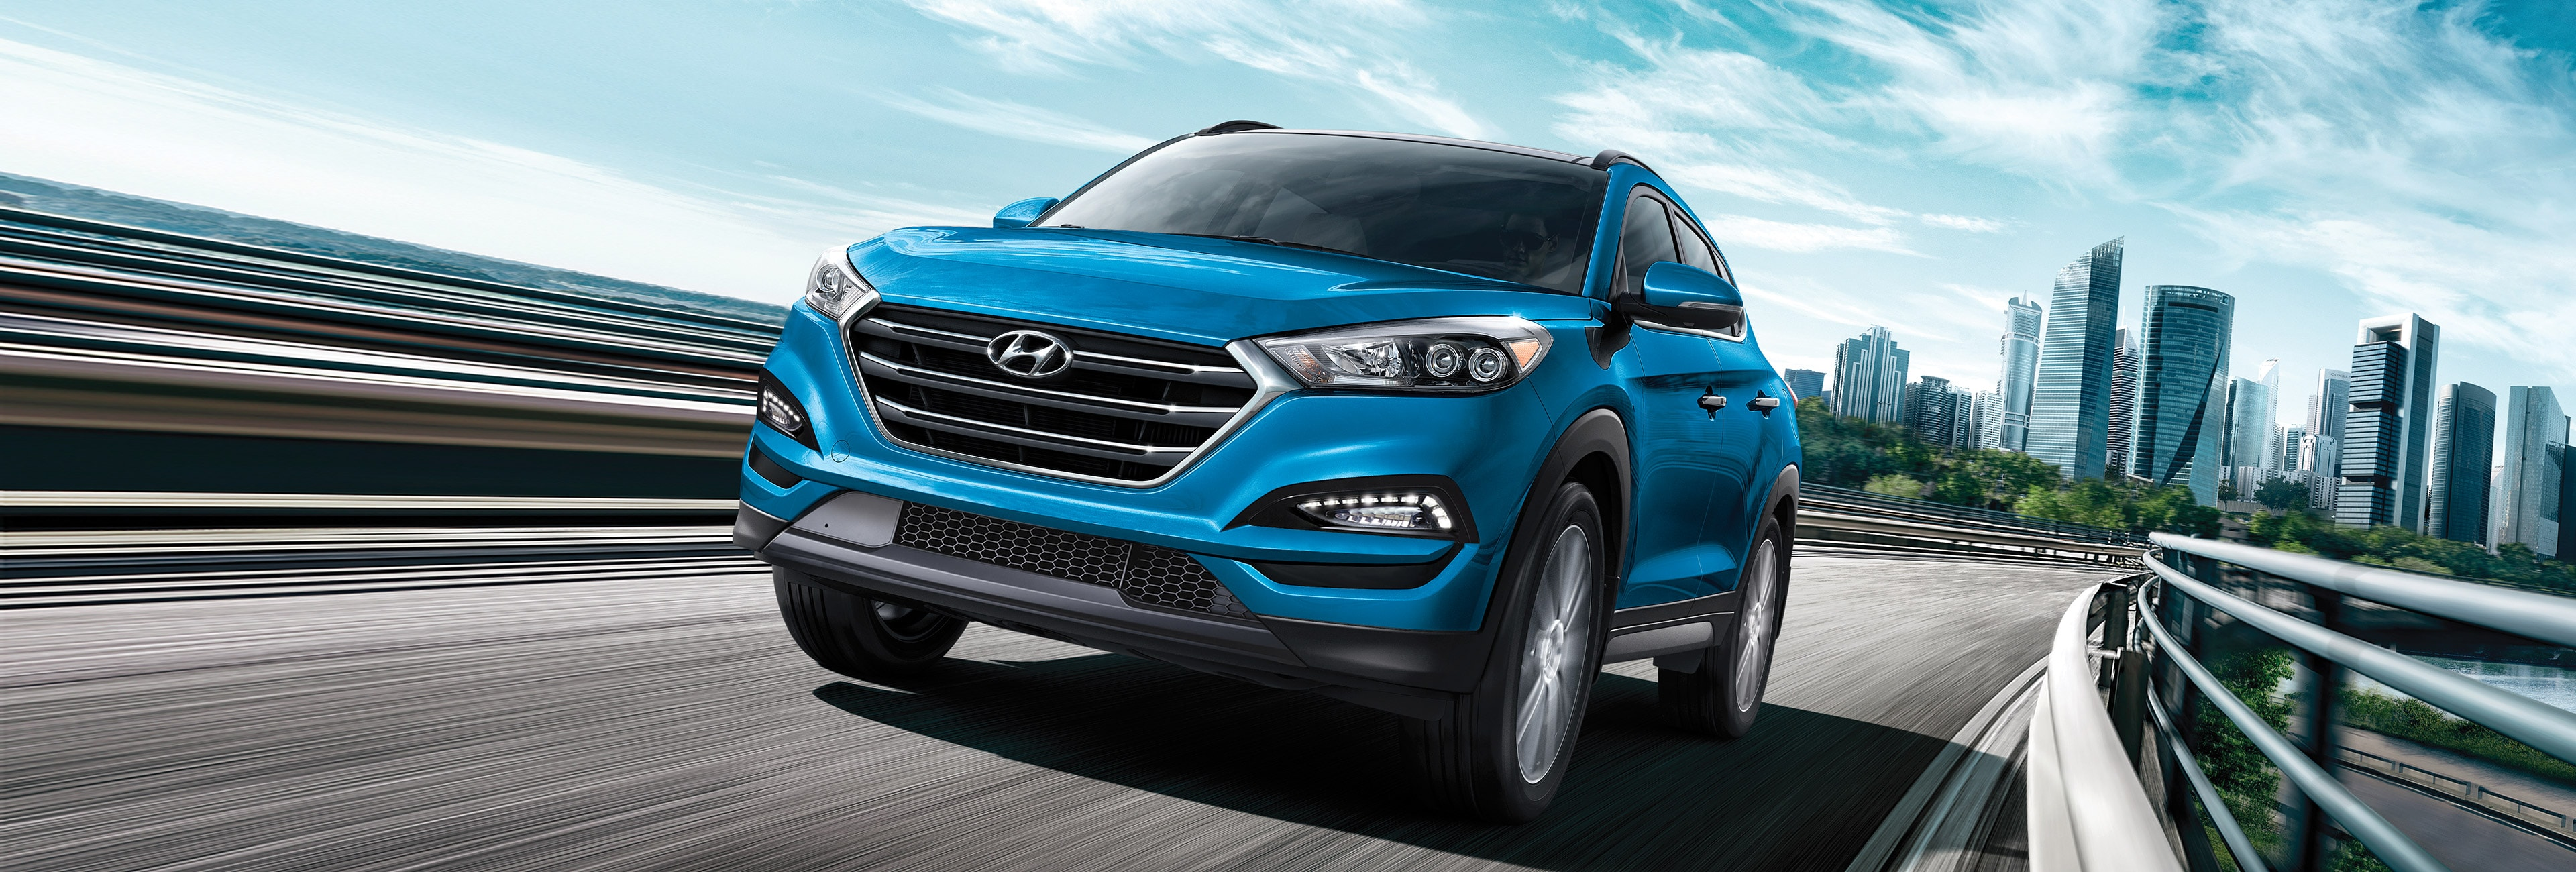 release new specs redesign best exterior interior and hyundai review car tucson